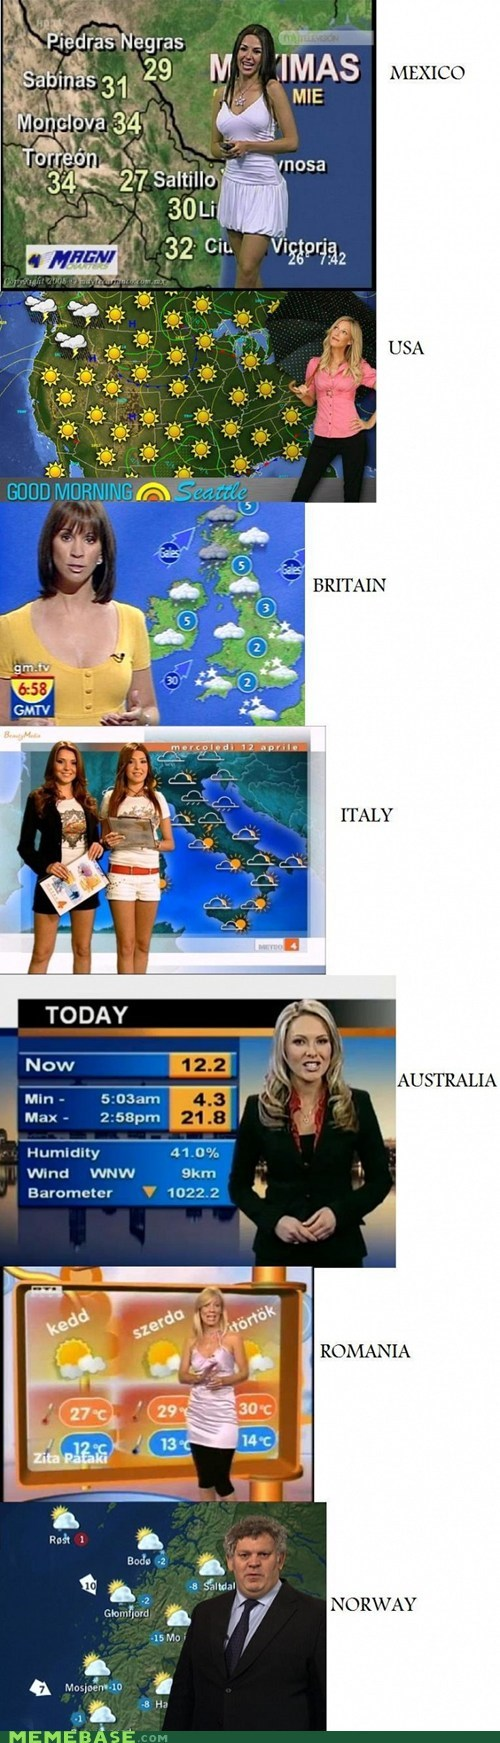 girls Memes news Norway weather - 6343902464